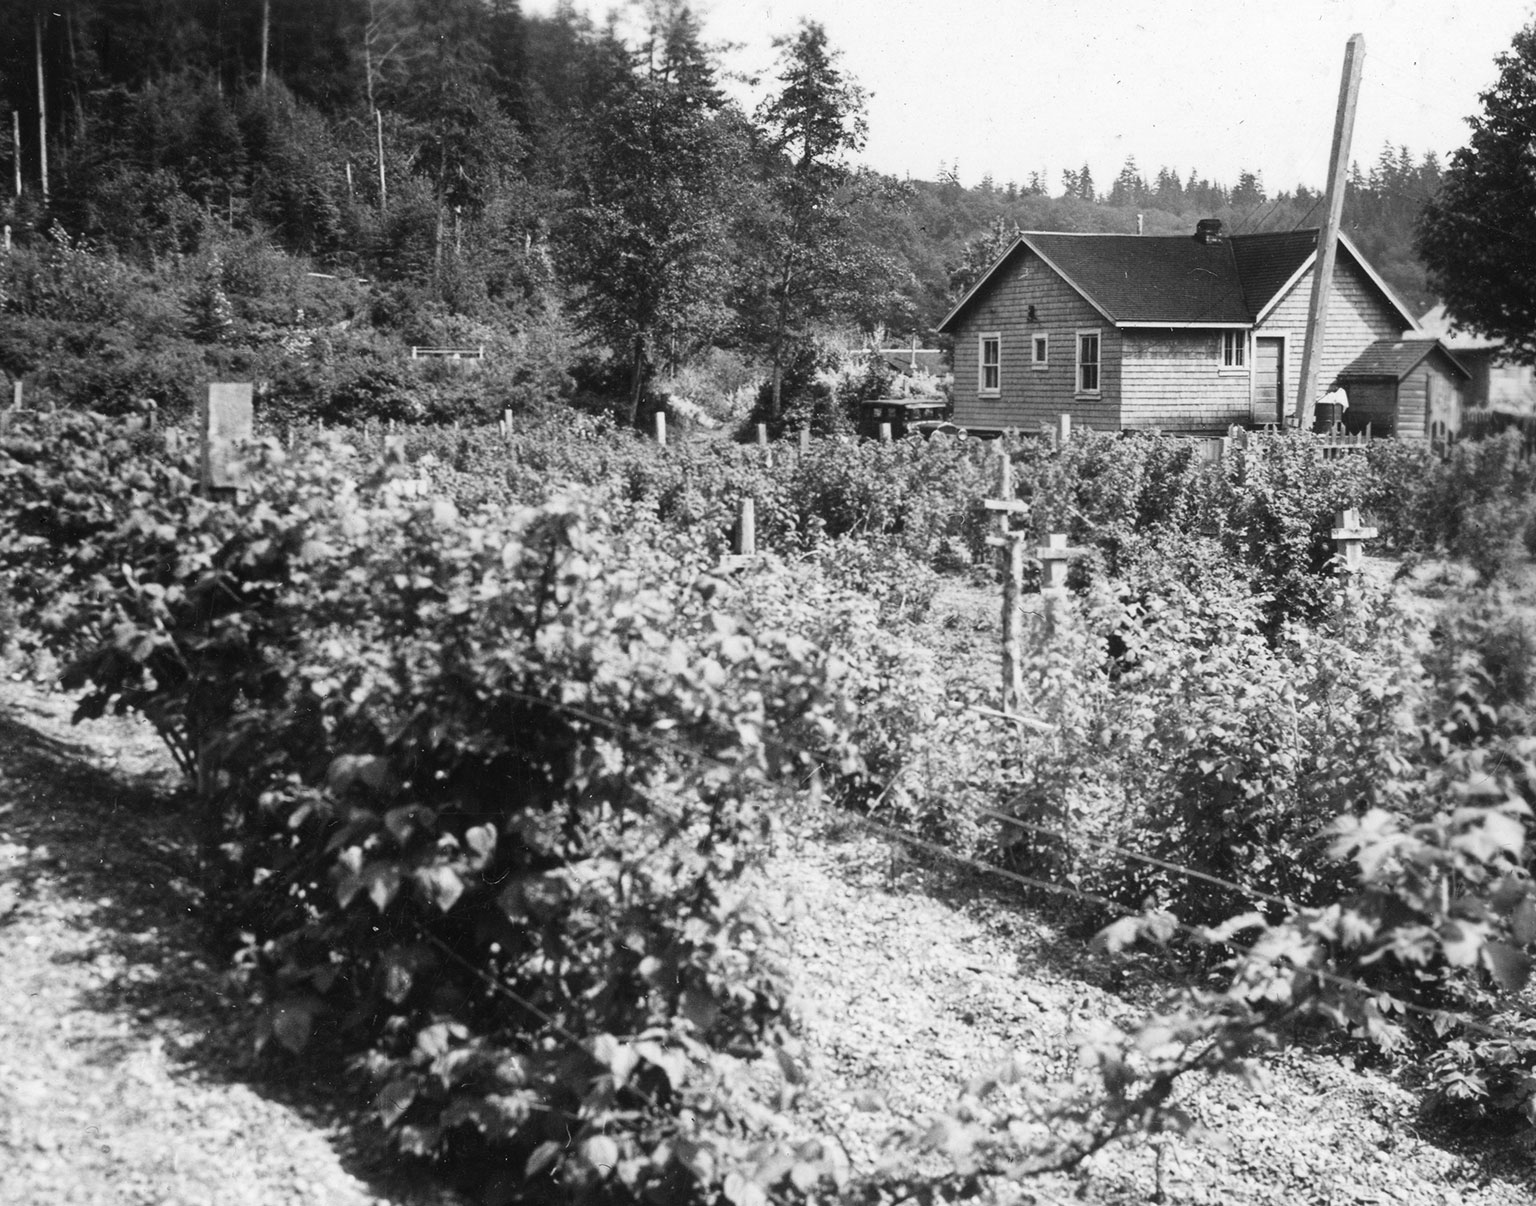 Image courtesy of the Audrey & Harry Hawthorn Library & Archives/UBC Museum of Anthropology